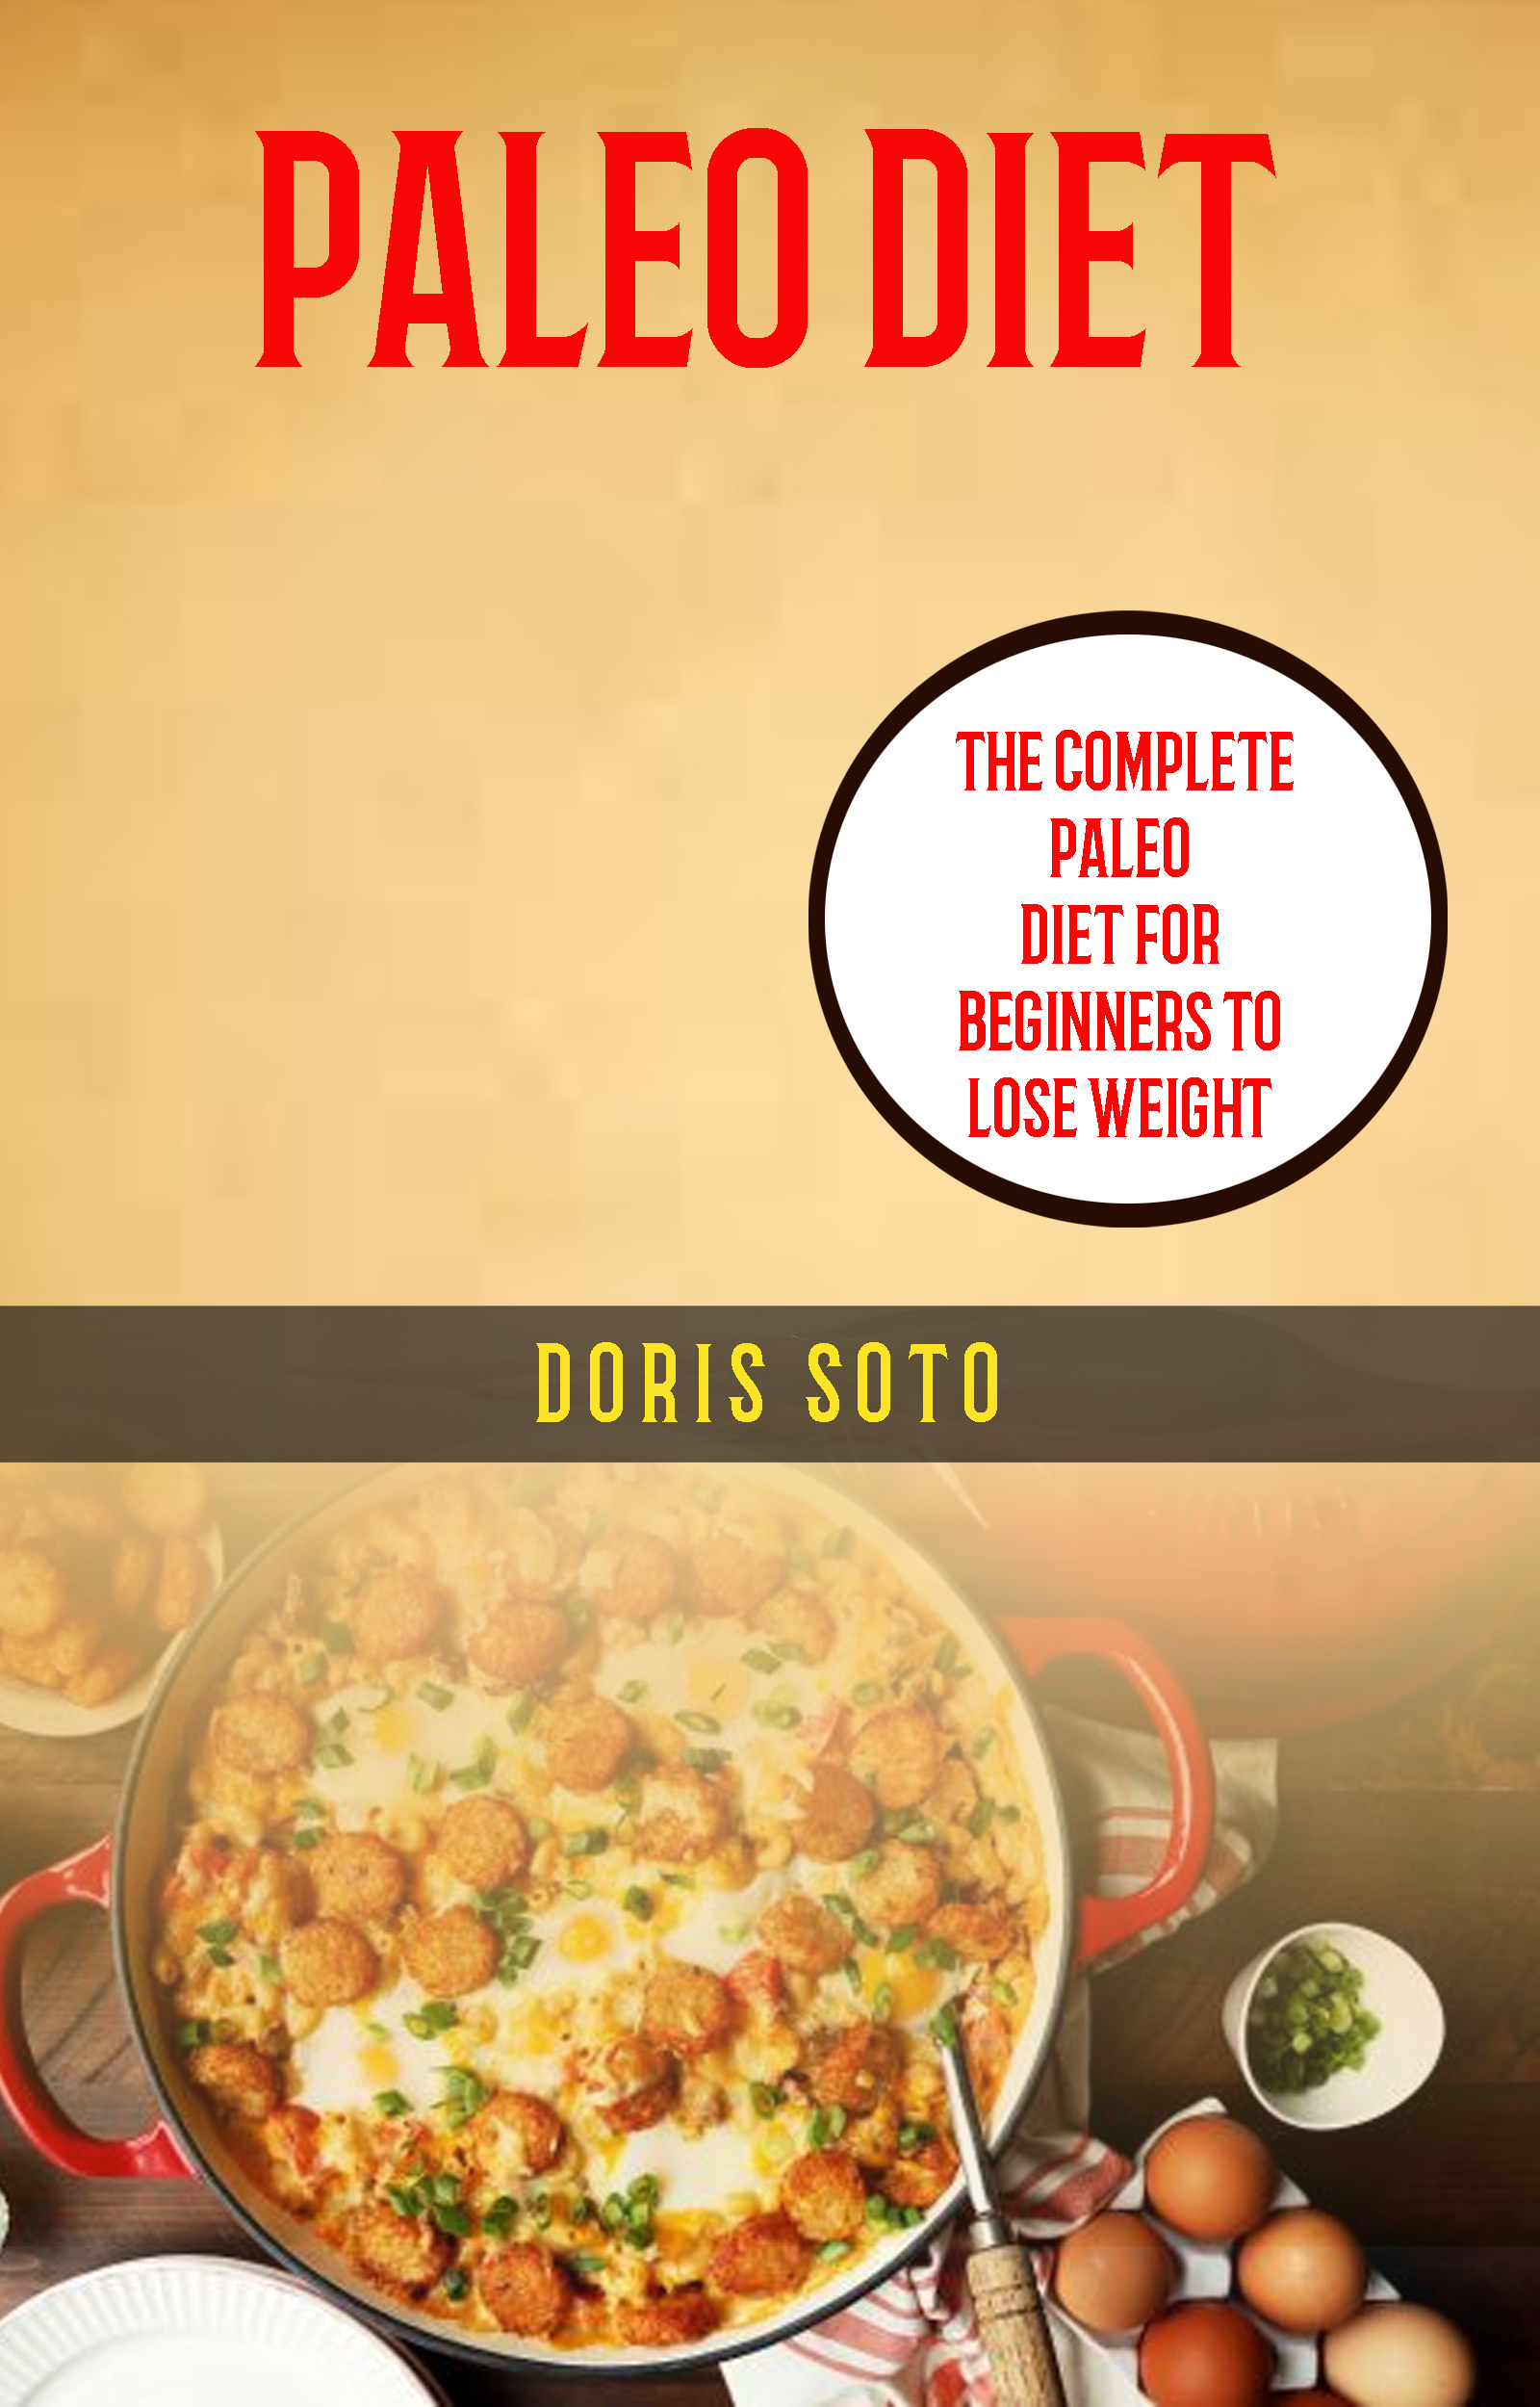 Paleo diet: the complete paleo diet for beginners to lose weight